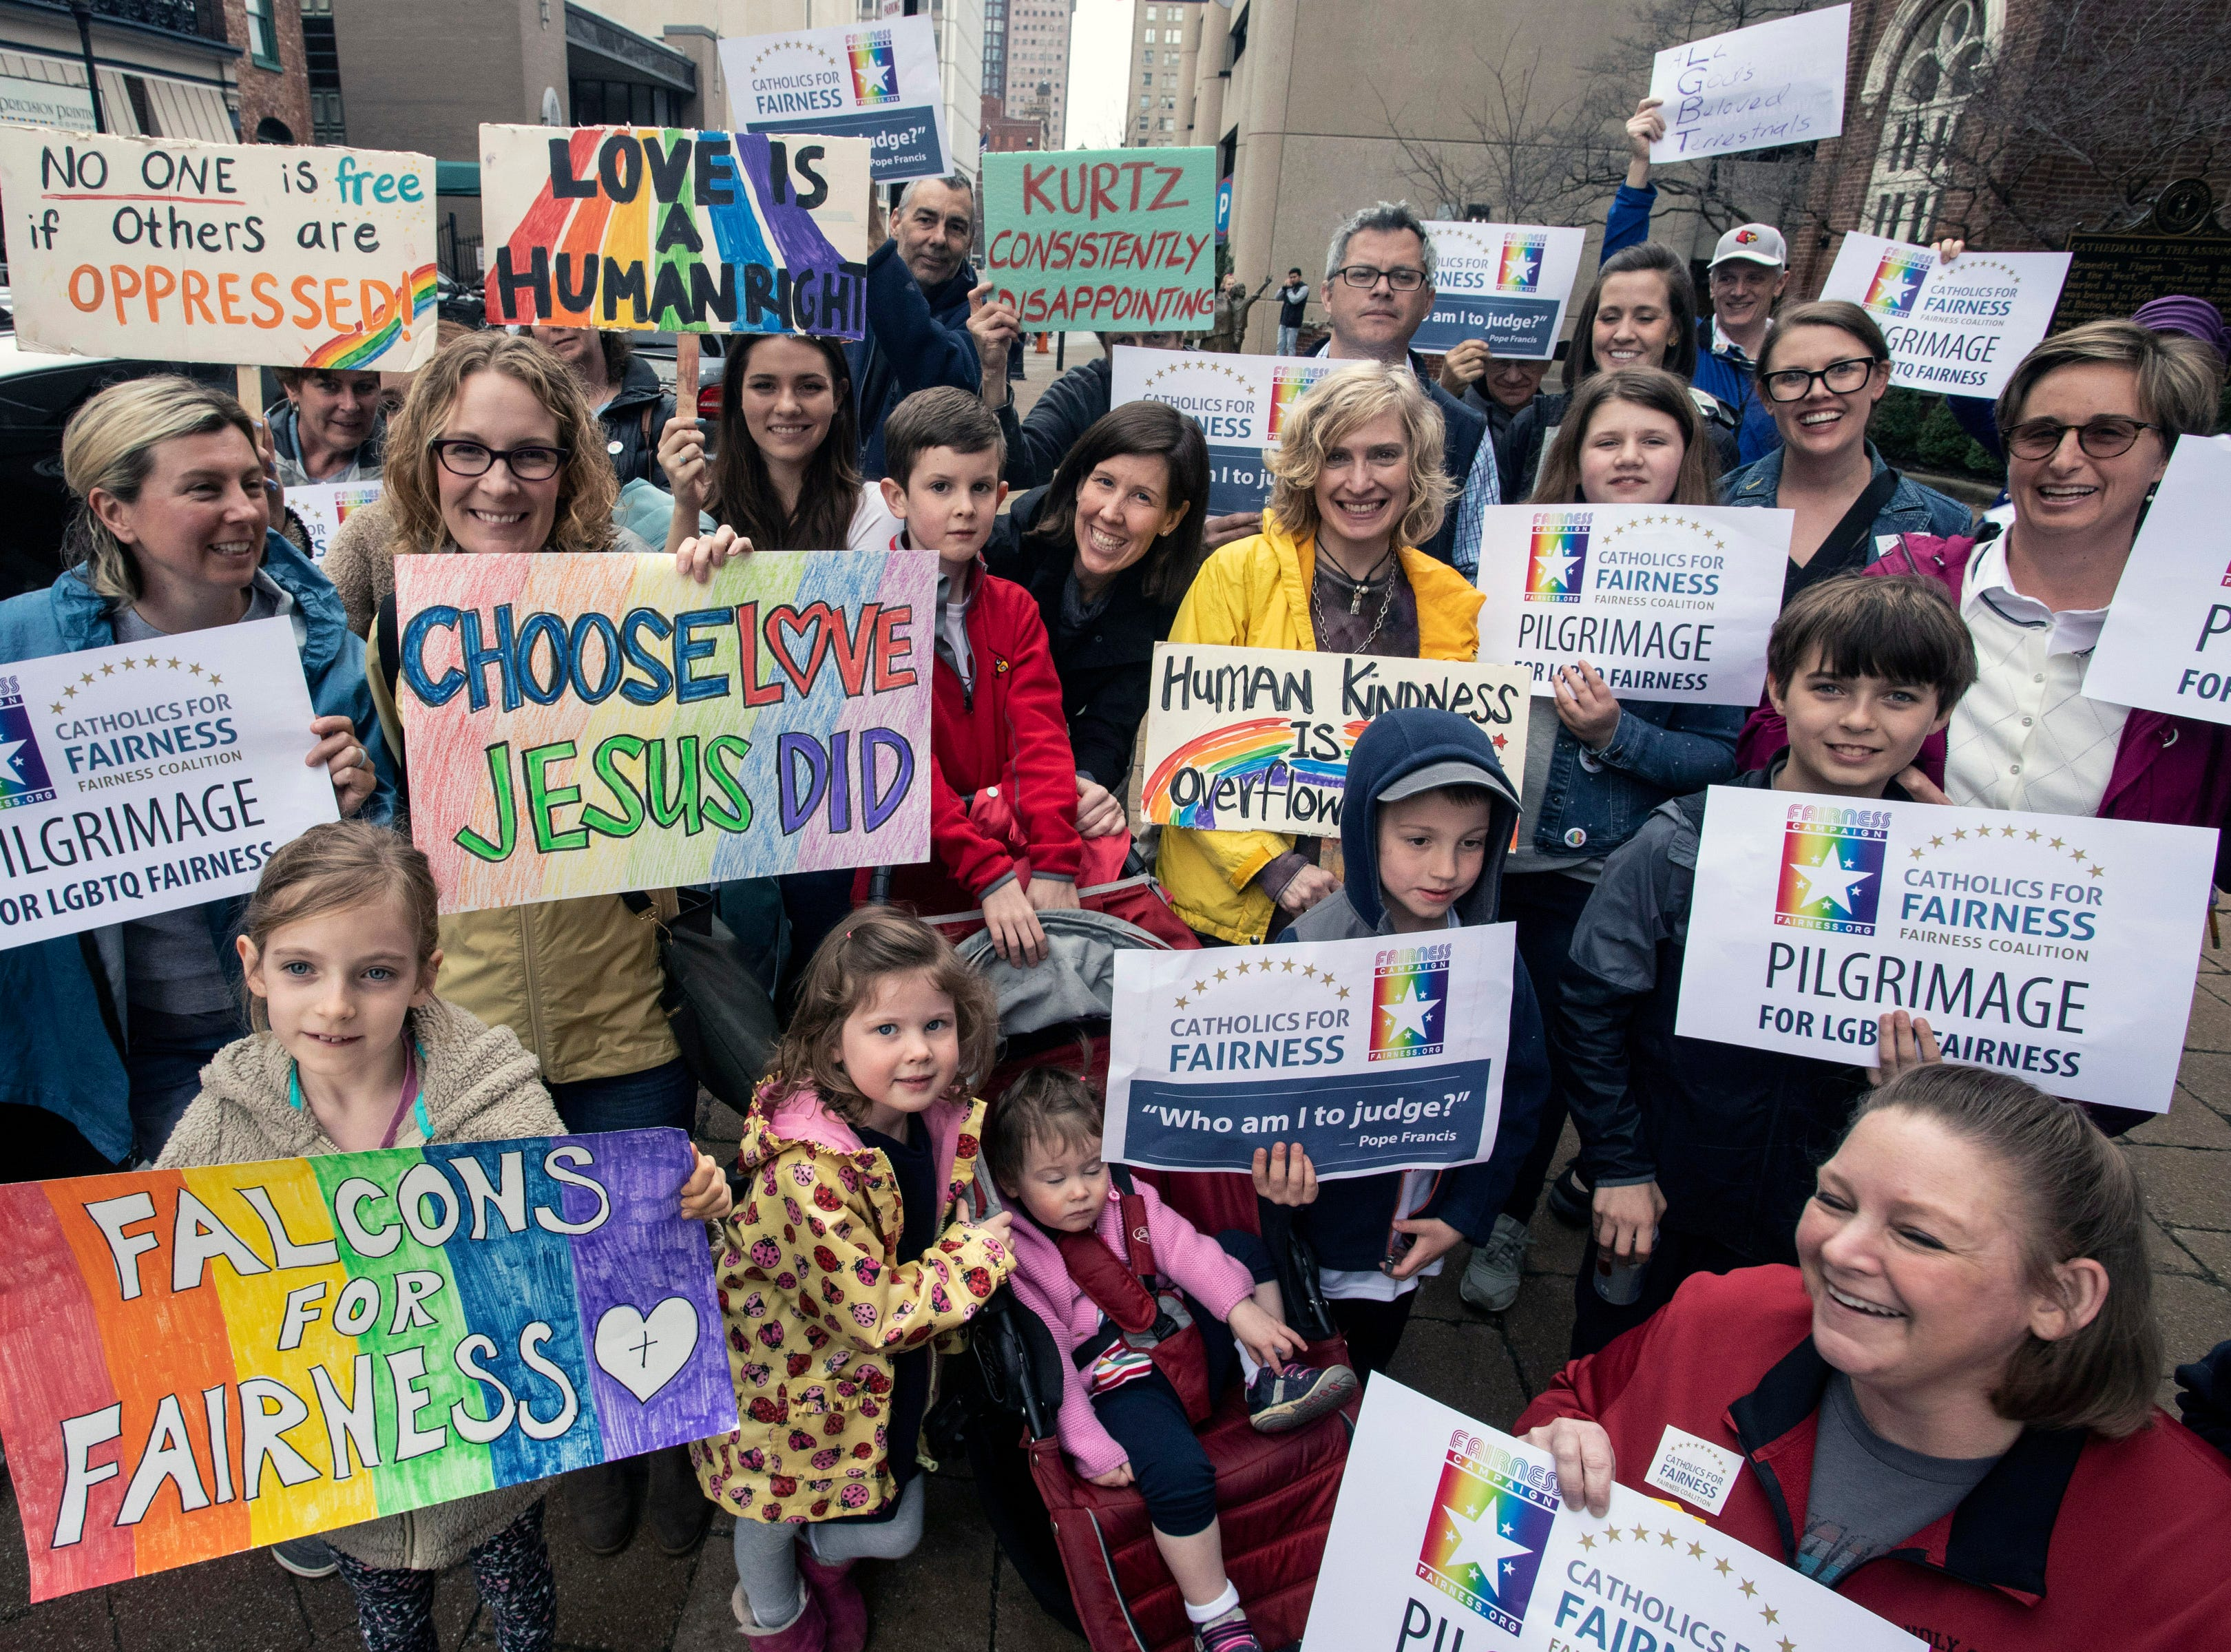 Signs of many colors were hoisted during the annual Catholics for Fairness Pilgrimage. March 24, 2019